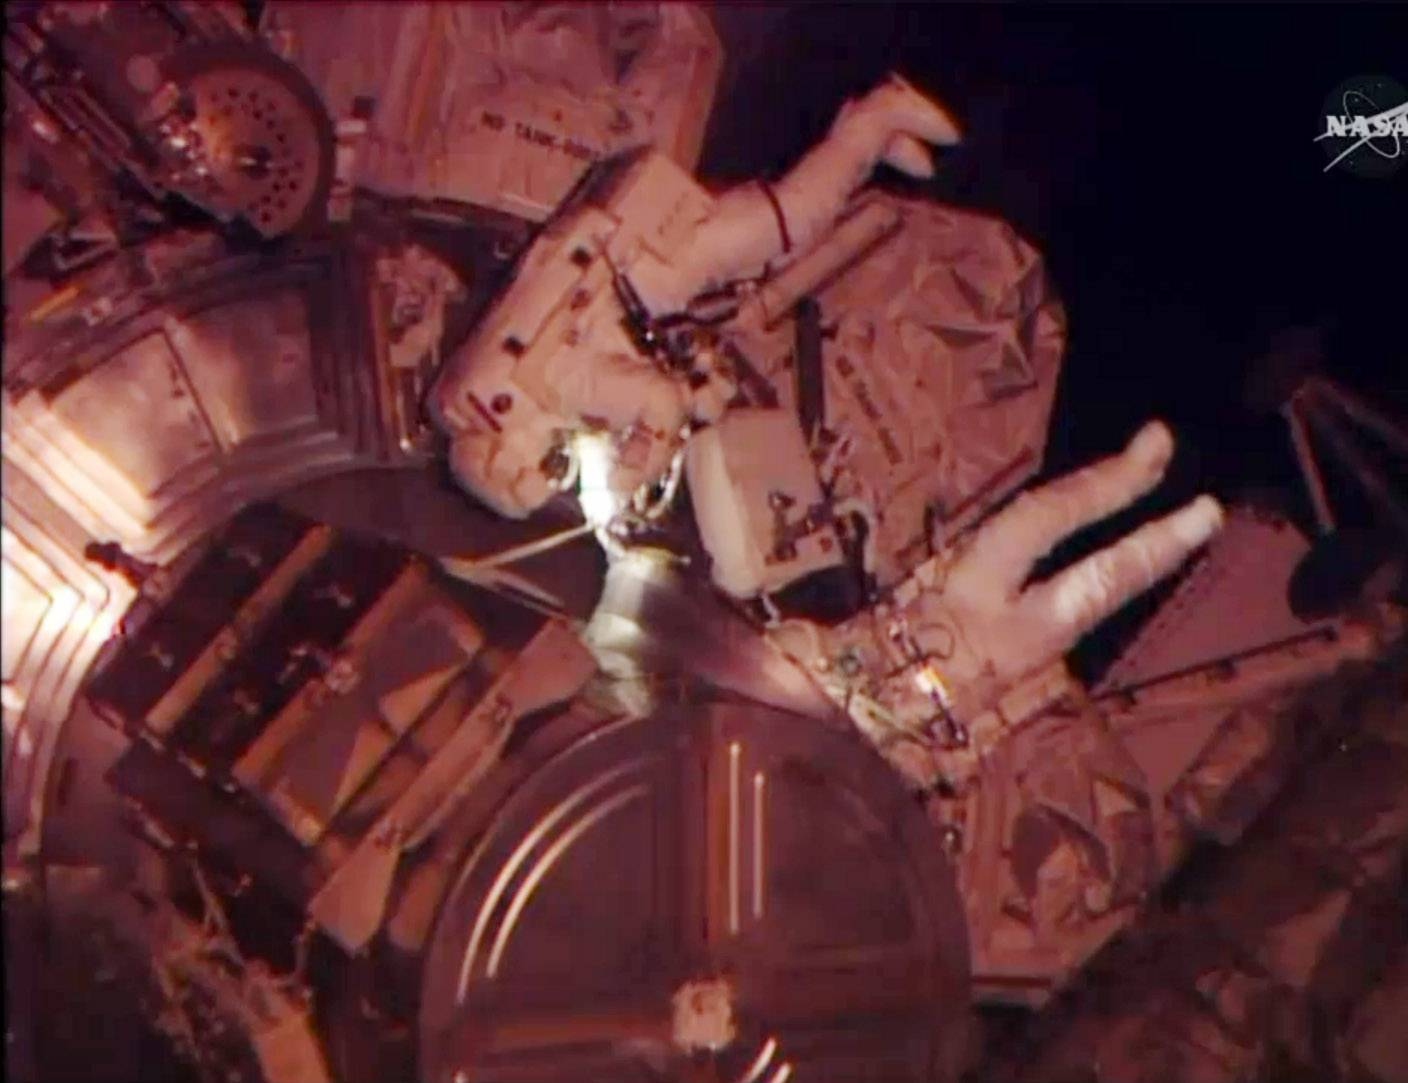 Astronauts Rick Mastracchio and Steven Swanson exit an airlock from the International Space Station. The spacewalk was scheduled to replace a dead computer and get their orbiting home back up to full strength.